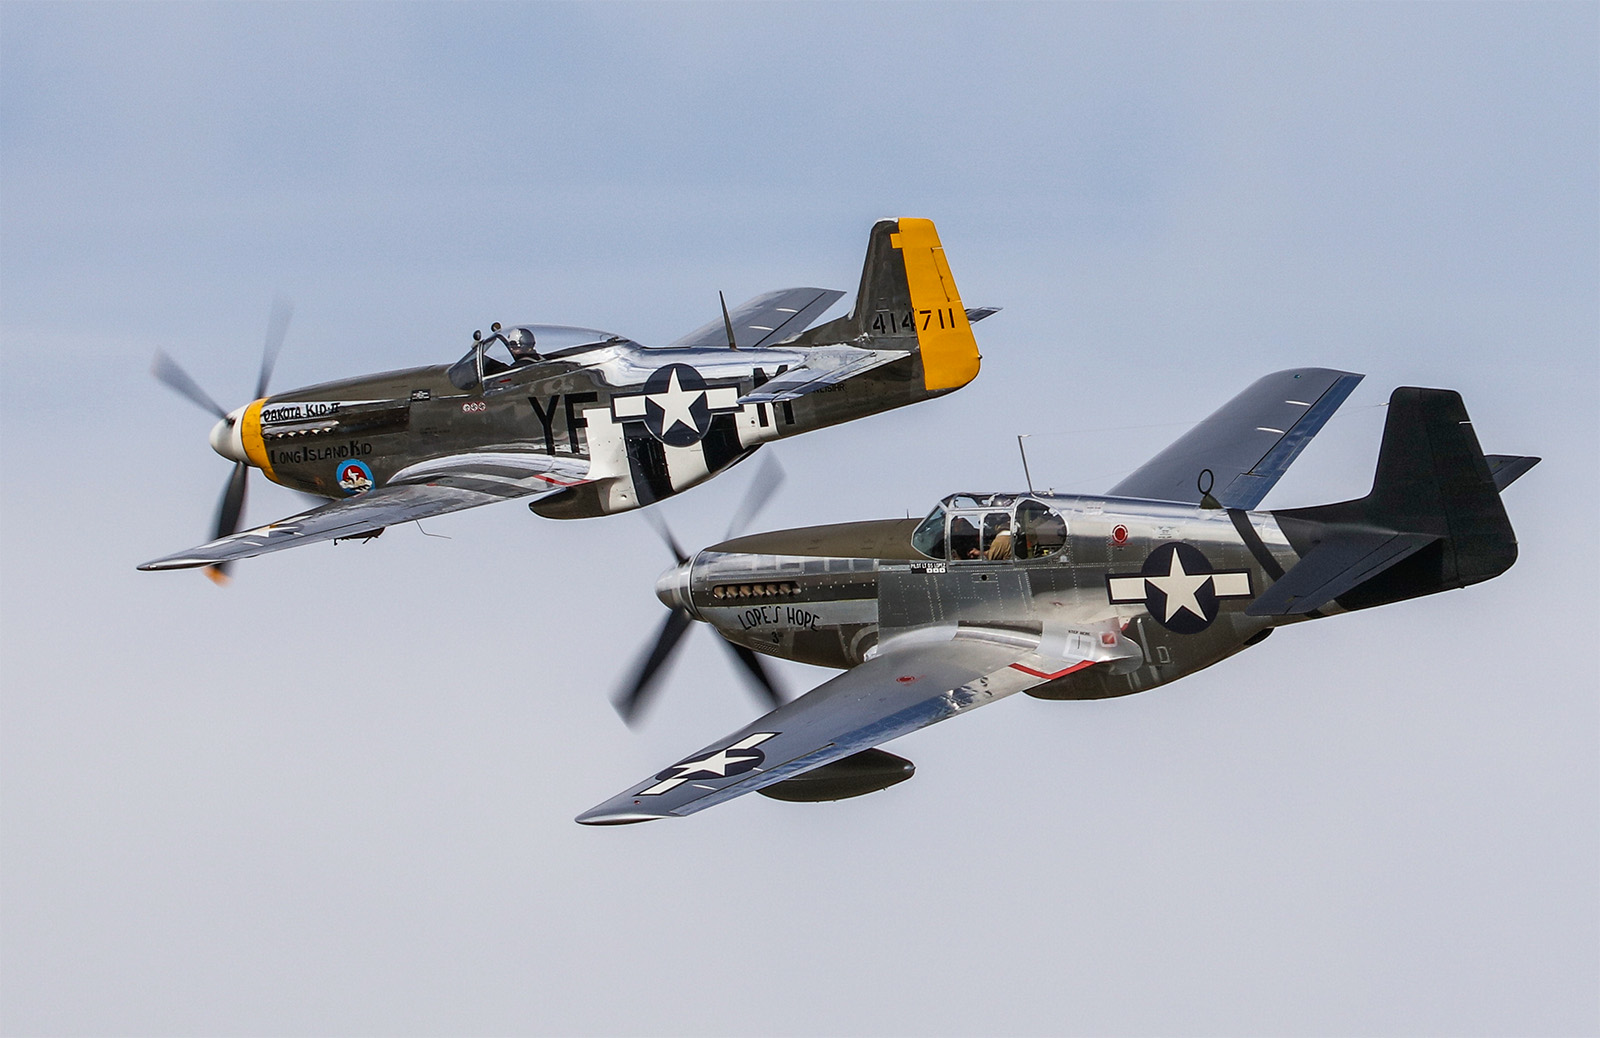 Lopes Hope 3rd in close formation with the P-51D chase plane for the test flight, TFLM's Dakota Kid. (photo by Randy Ruttger via AirCorps Aviation)